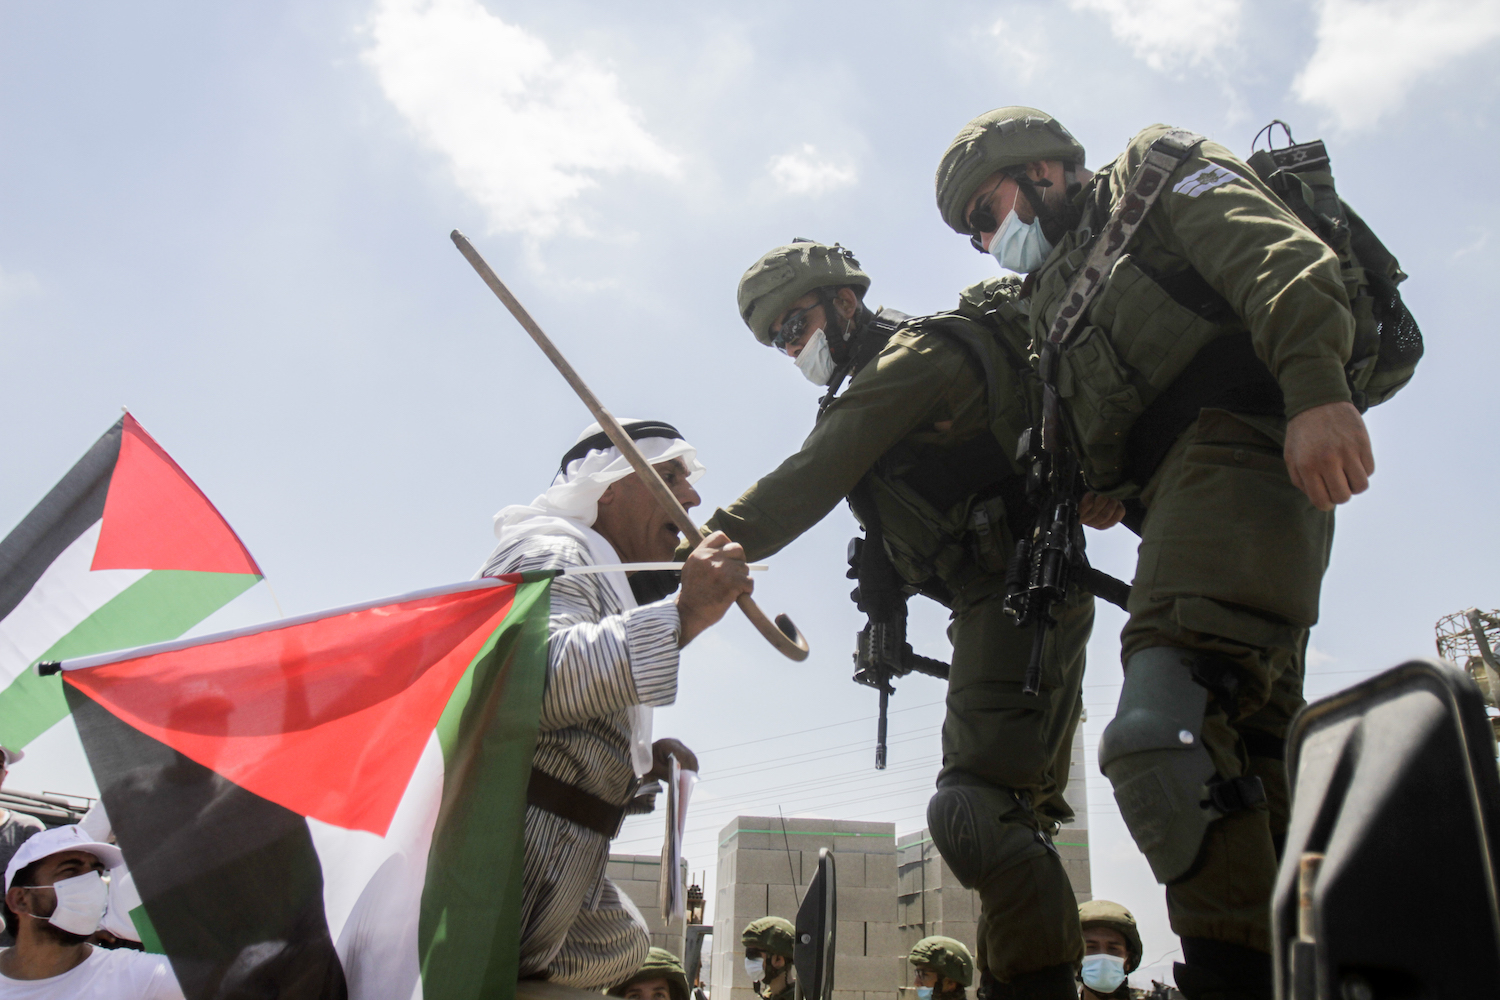 Palestinians protest against the deal between Israel and the UAE in the village of Haris, near the West Bank city of Nablus, August 14, 2020. (Nasser Ishtayeh/Flash90)